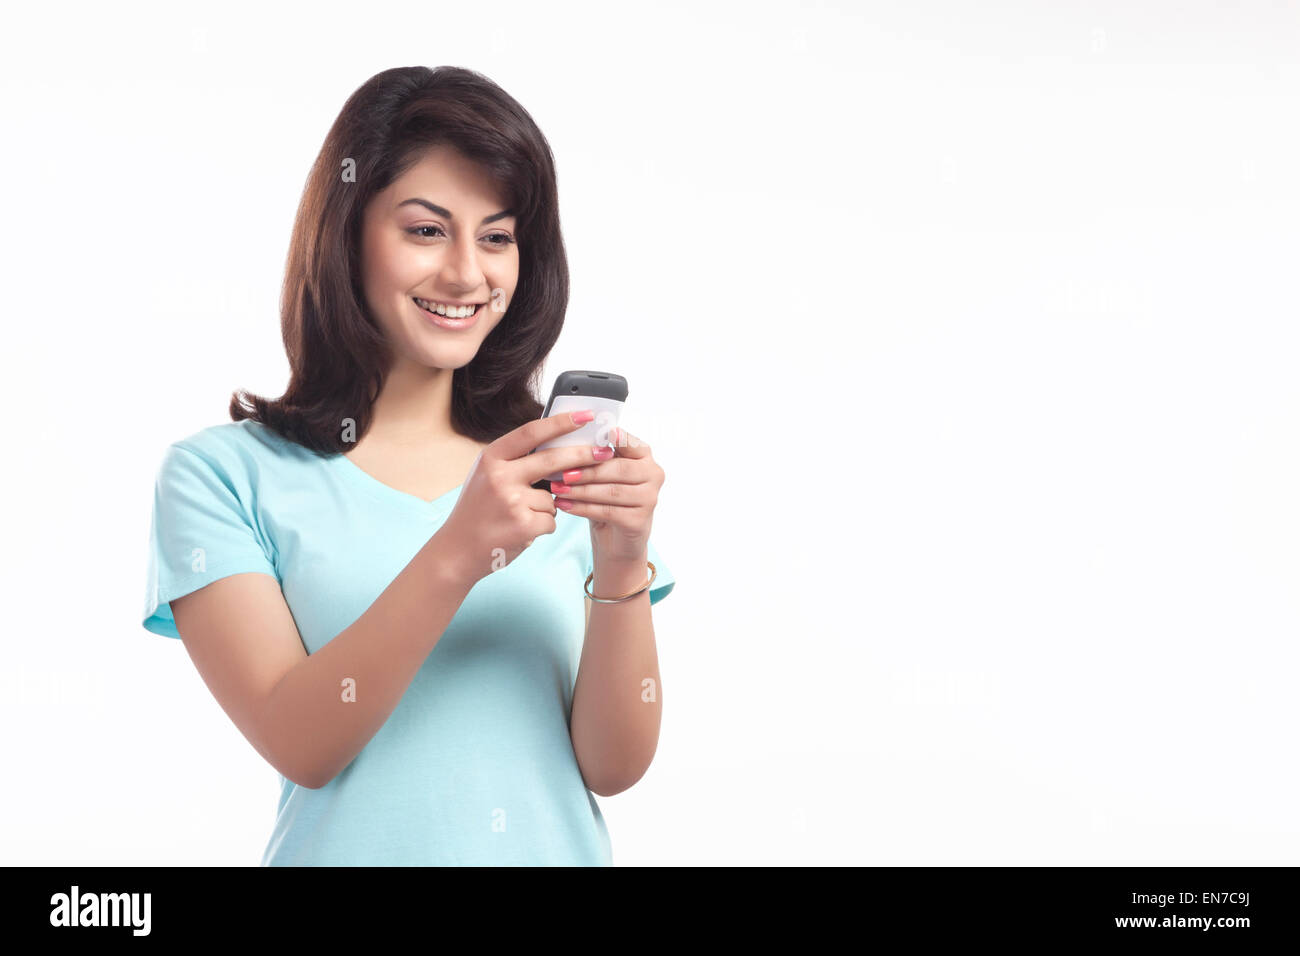 Woman reading an sms on a mobile phone - Stock Image